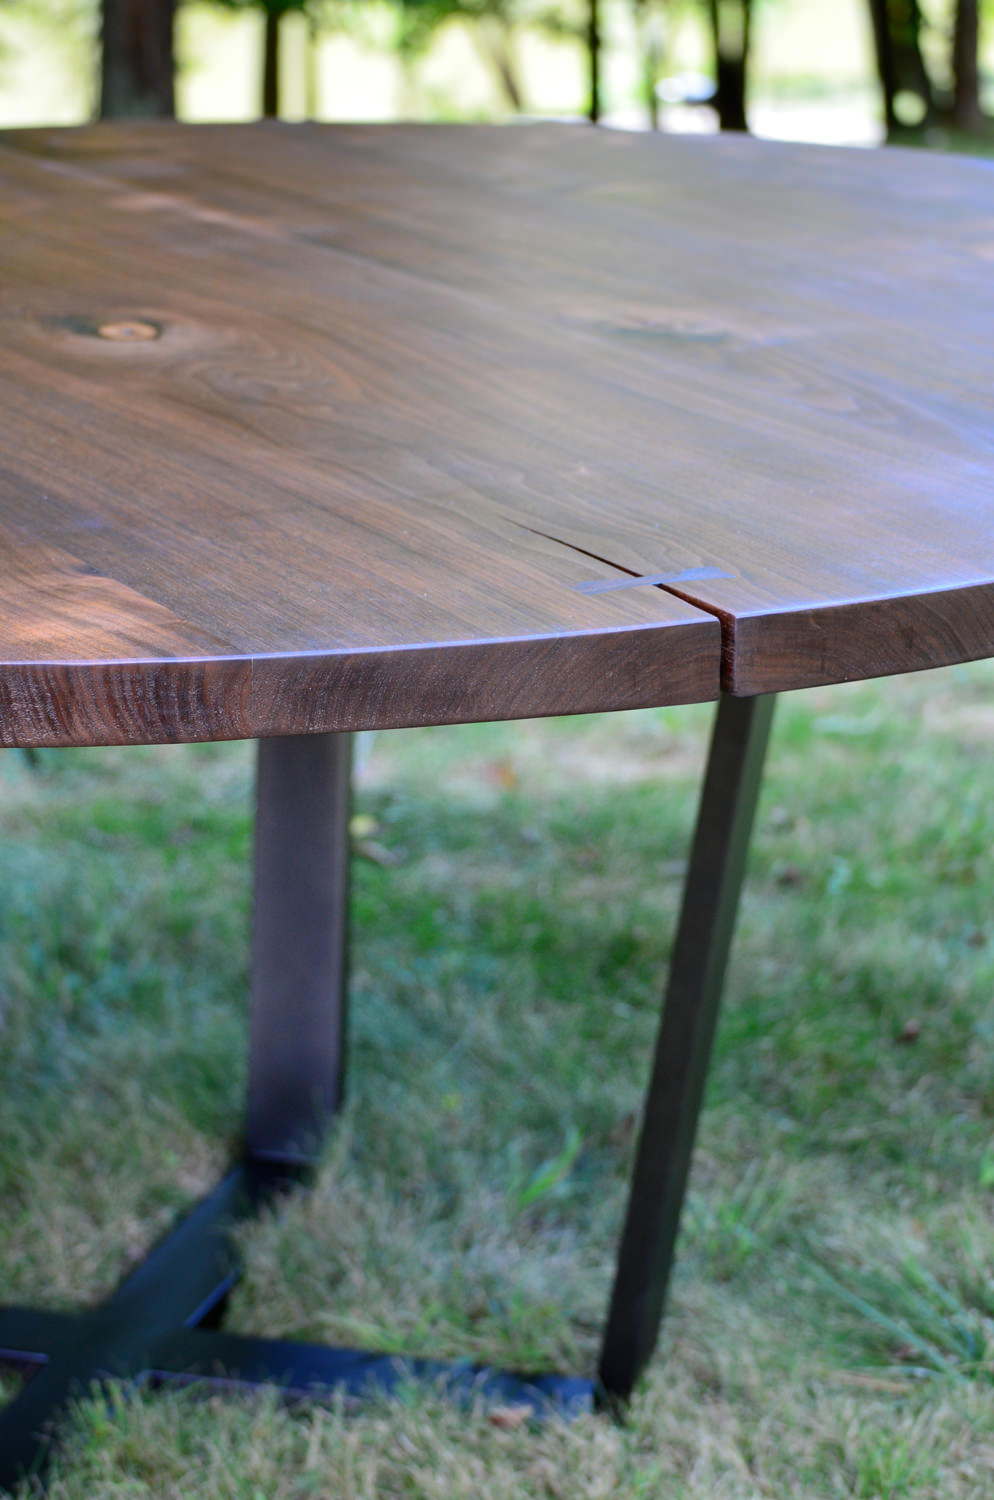 Walnut and Blackened Stainless Steel Dining Table